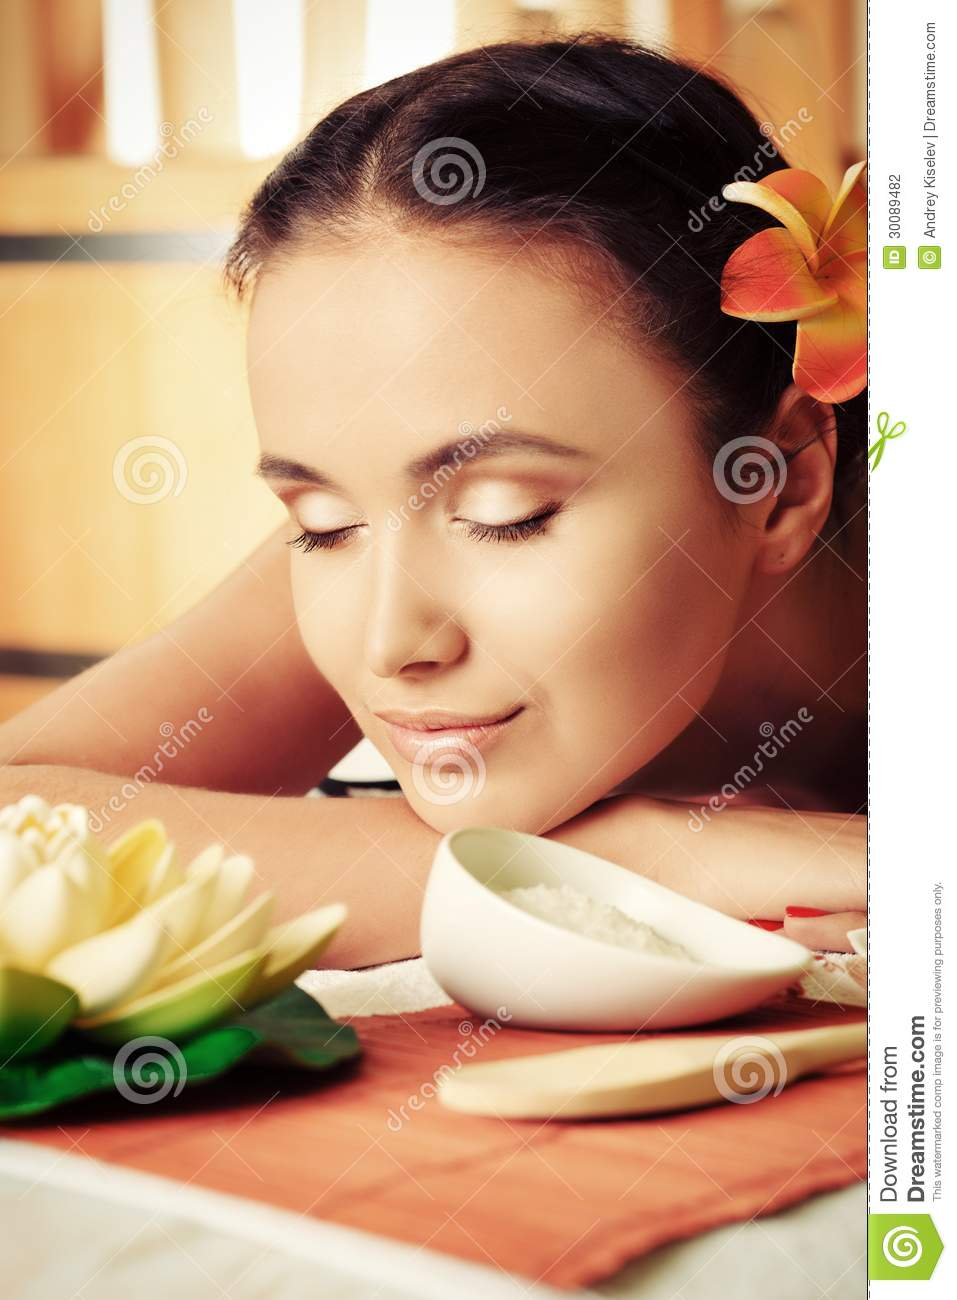 Taking pleasure stock photography image 30089482 for Salon younga